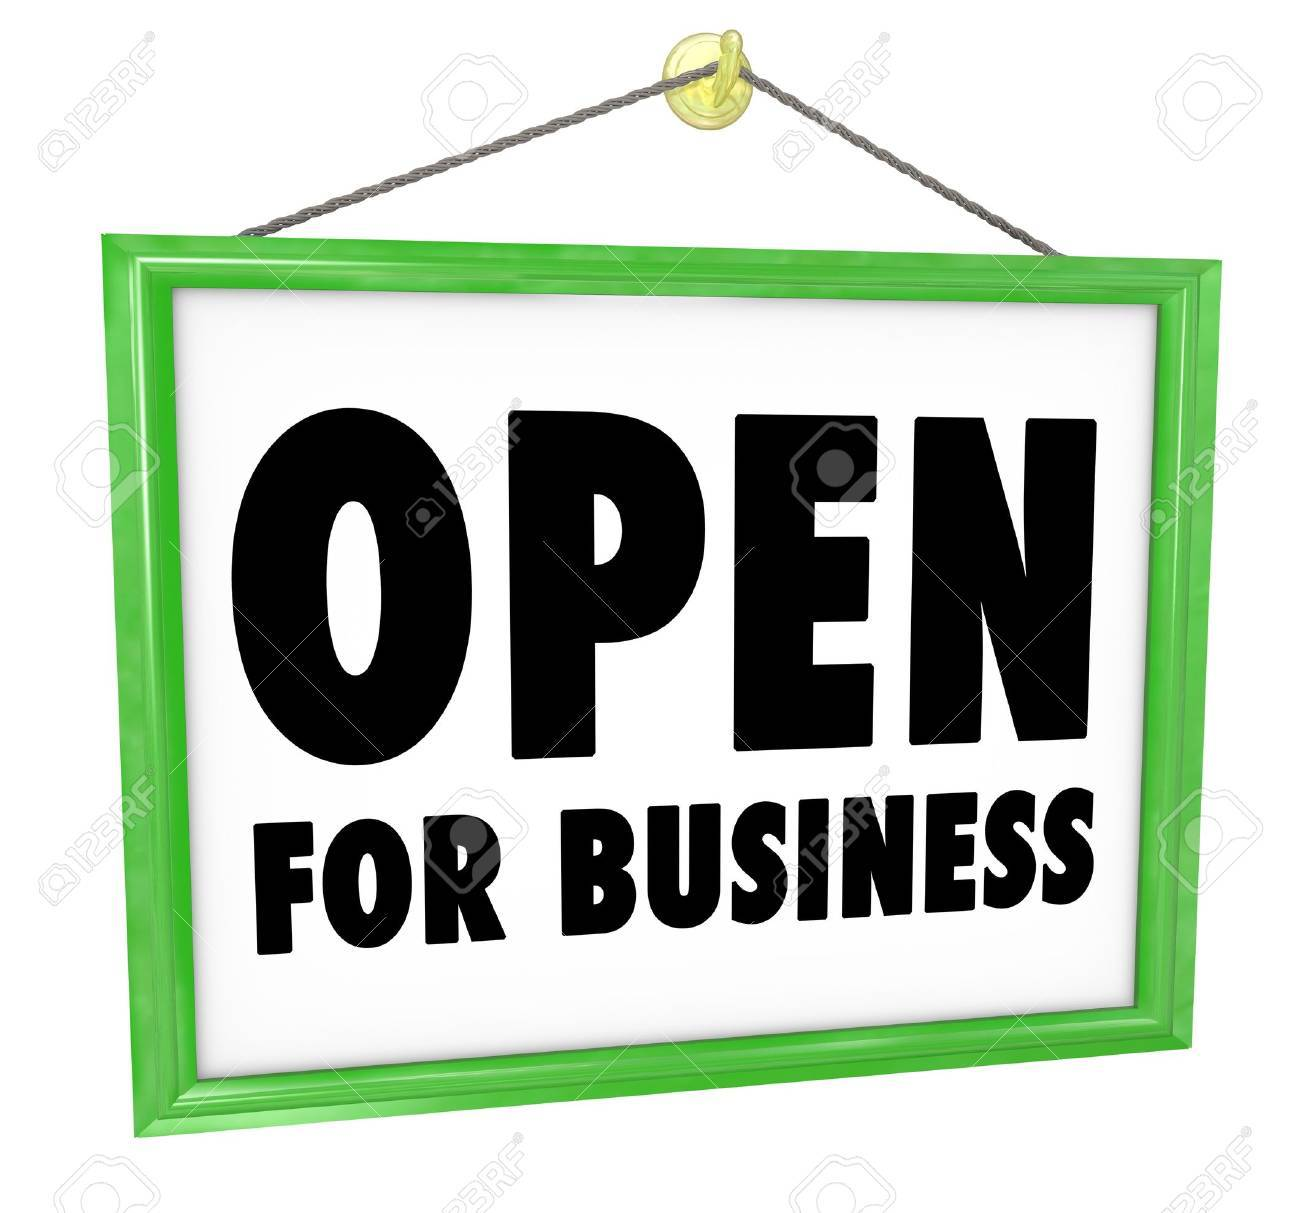 The words Open for Business on a sign that would hang on the wall or in a window of a shop, store or business to invite customers inside for a grand opening or for regular business hours Stock Photo - 15875813